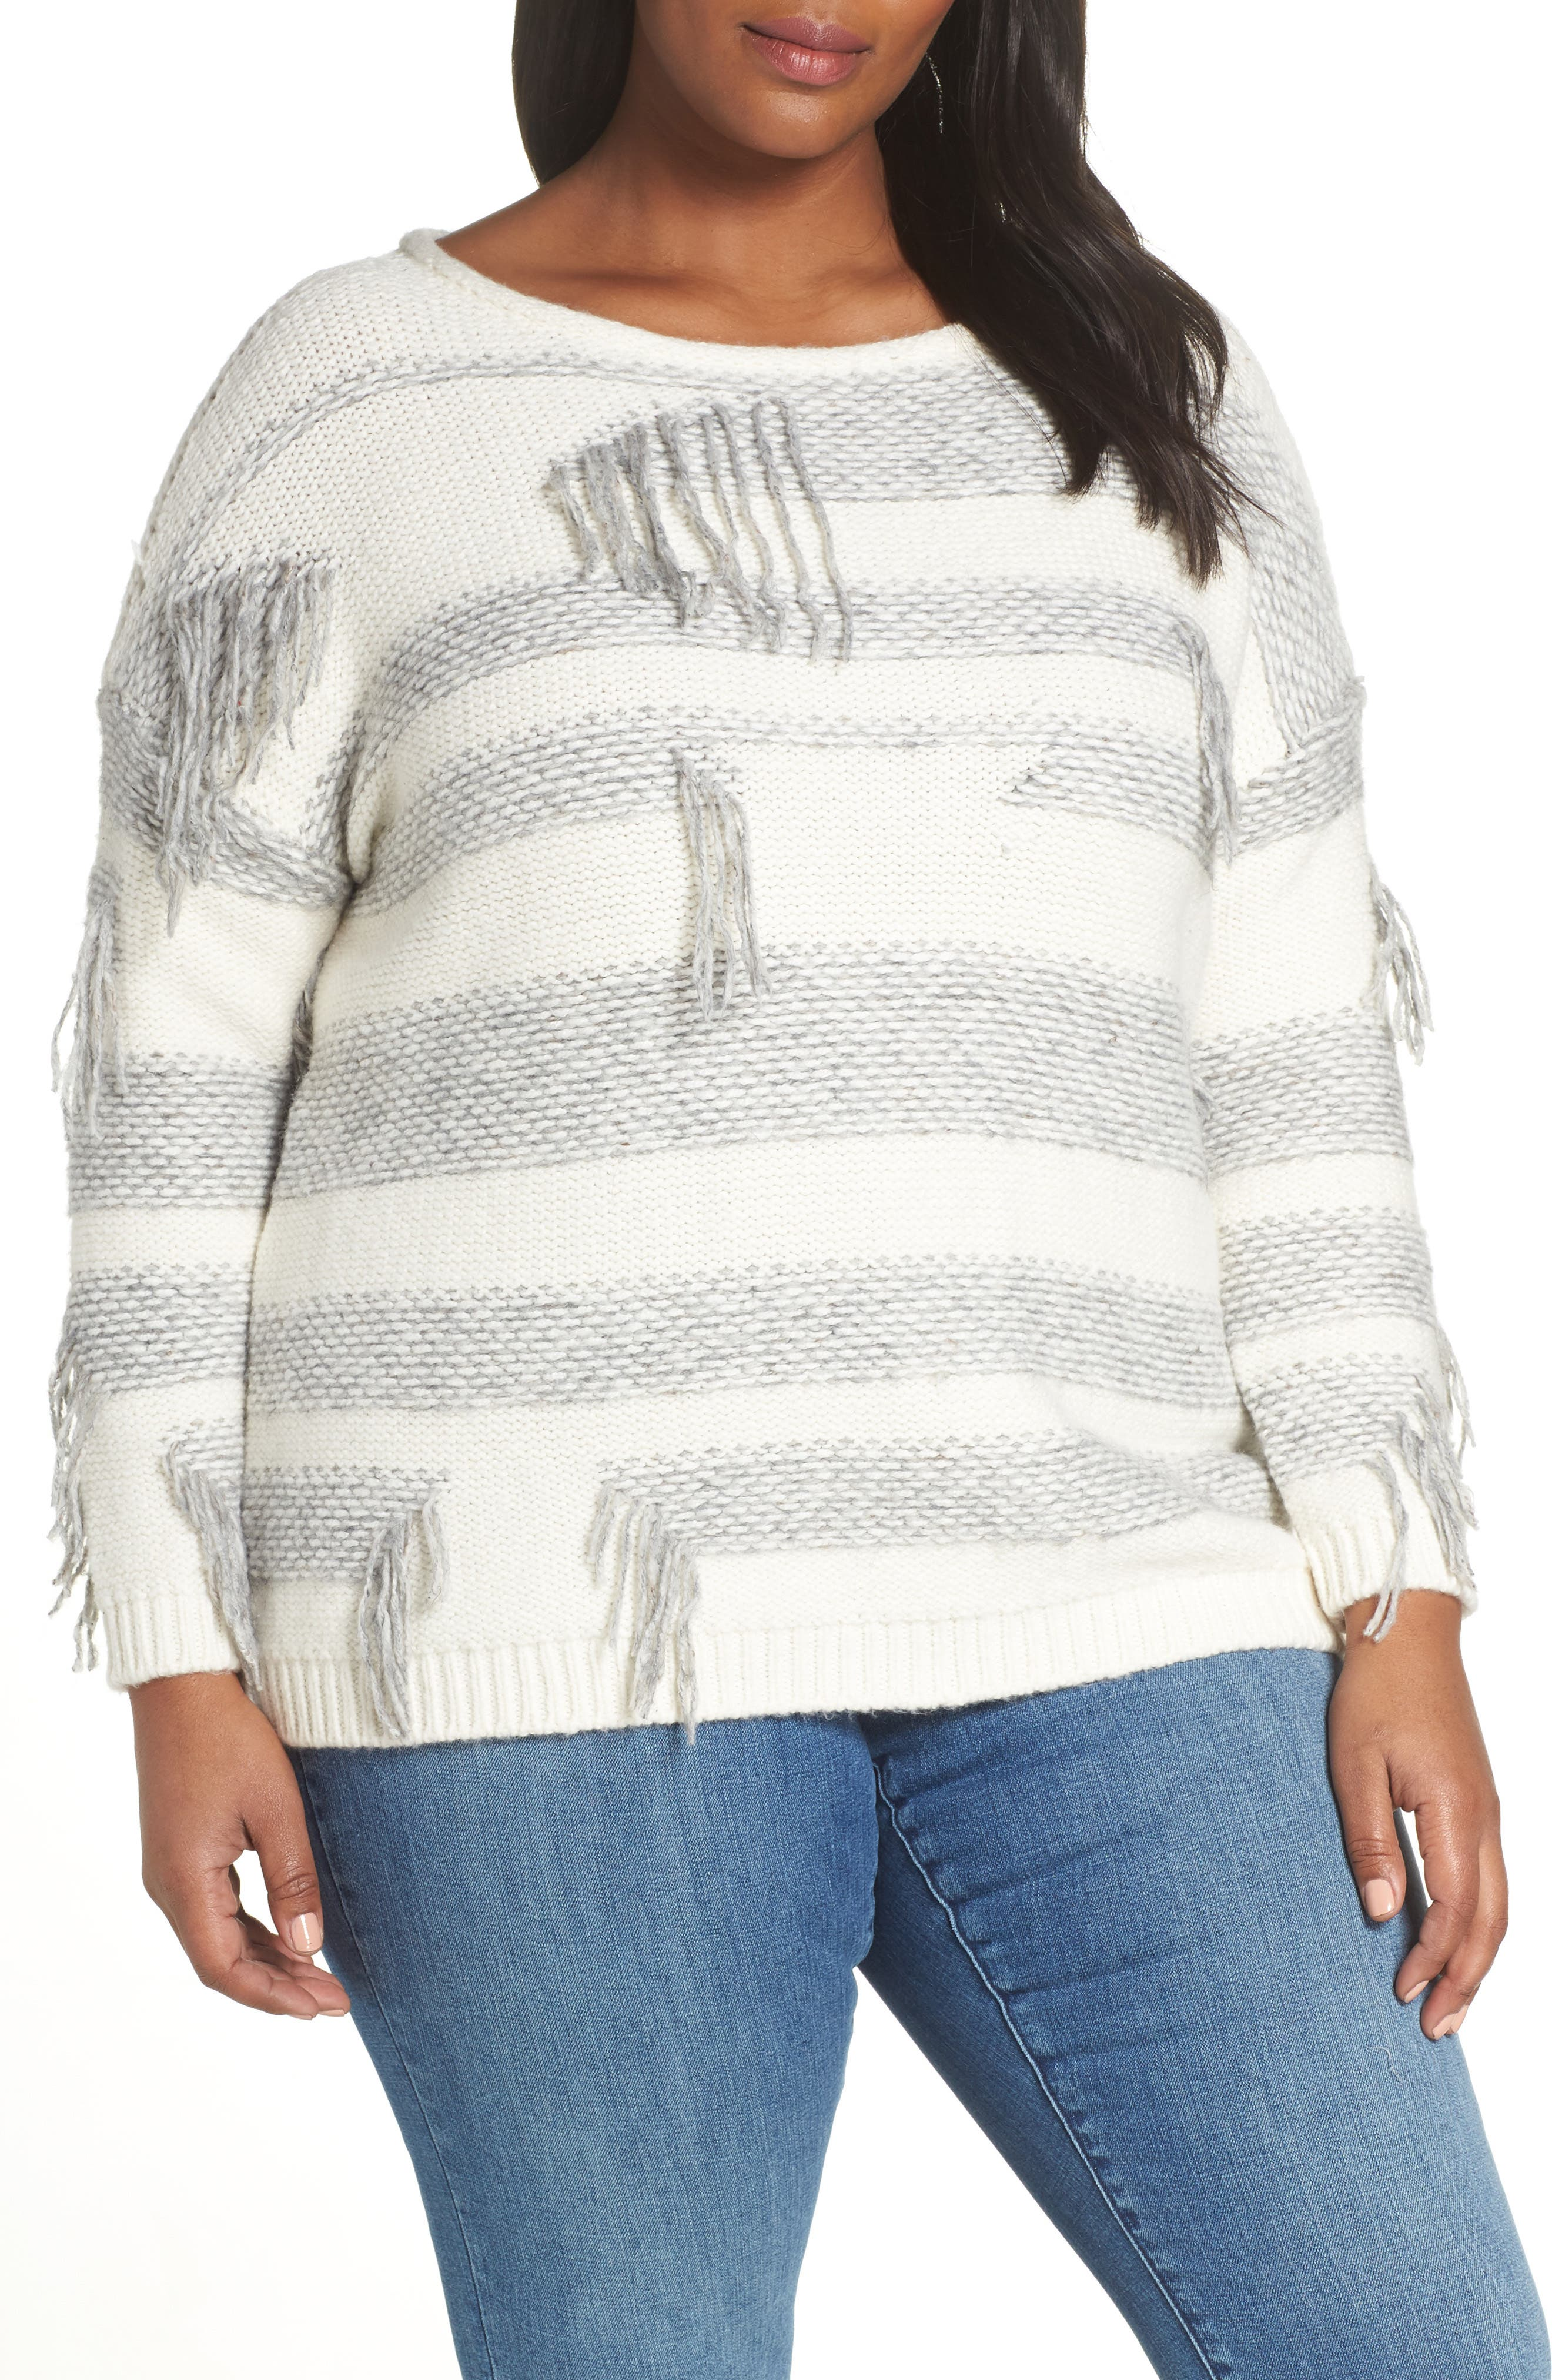 Fringe Detail Stripe Cotton Blend Sweater,                         Main,                         color, LIGHT HEATHER GREY